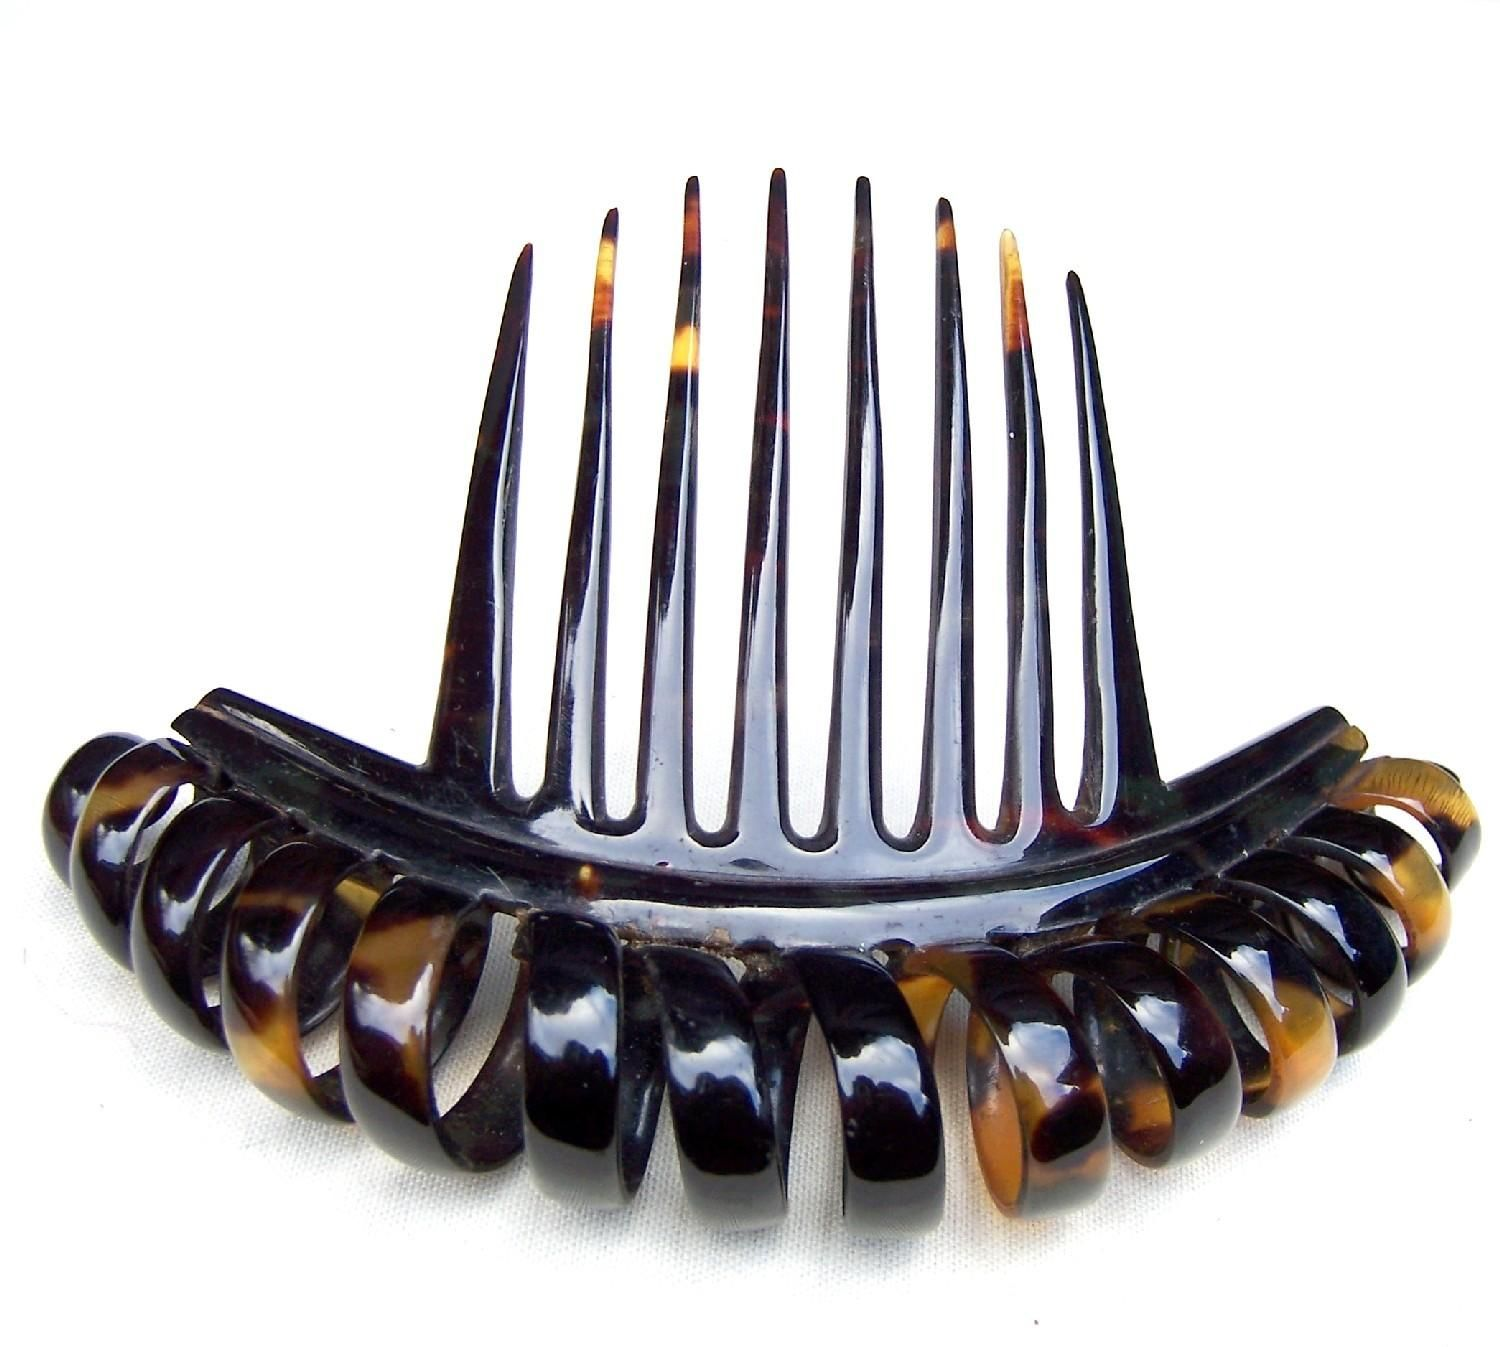 Vintage hair accessory holder - A Handsome Mid Victorian Faux Tortoiseshell Comb With The Iconic Corkscrew Design Condition Good Vintage